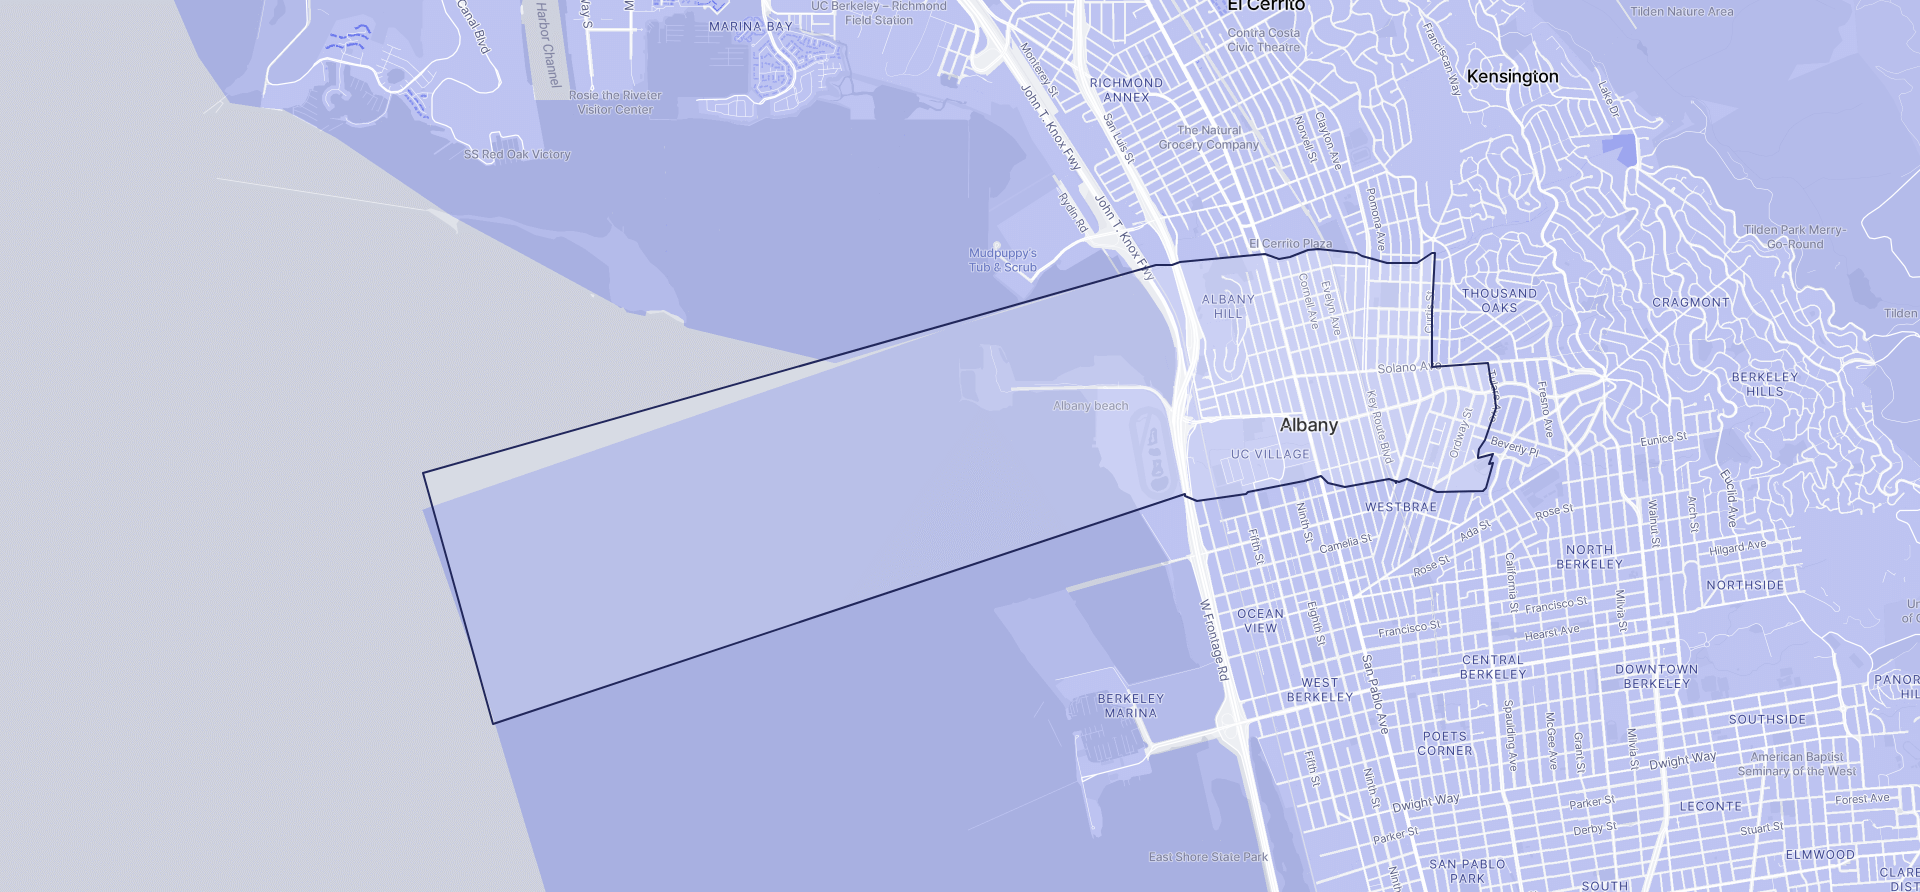 Image of Albany boundaries on a map.